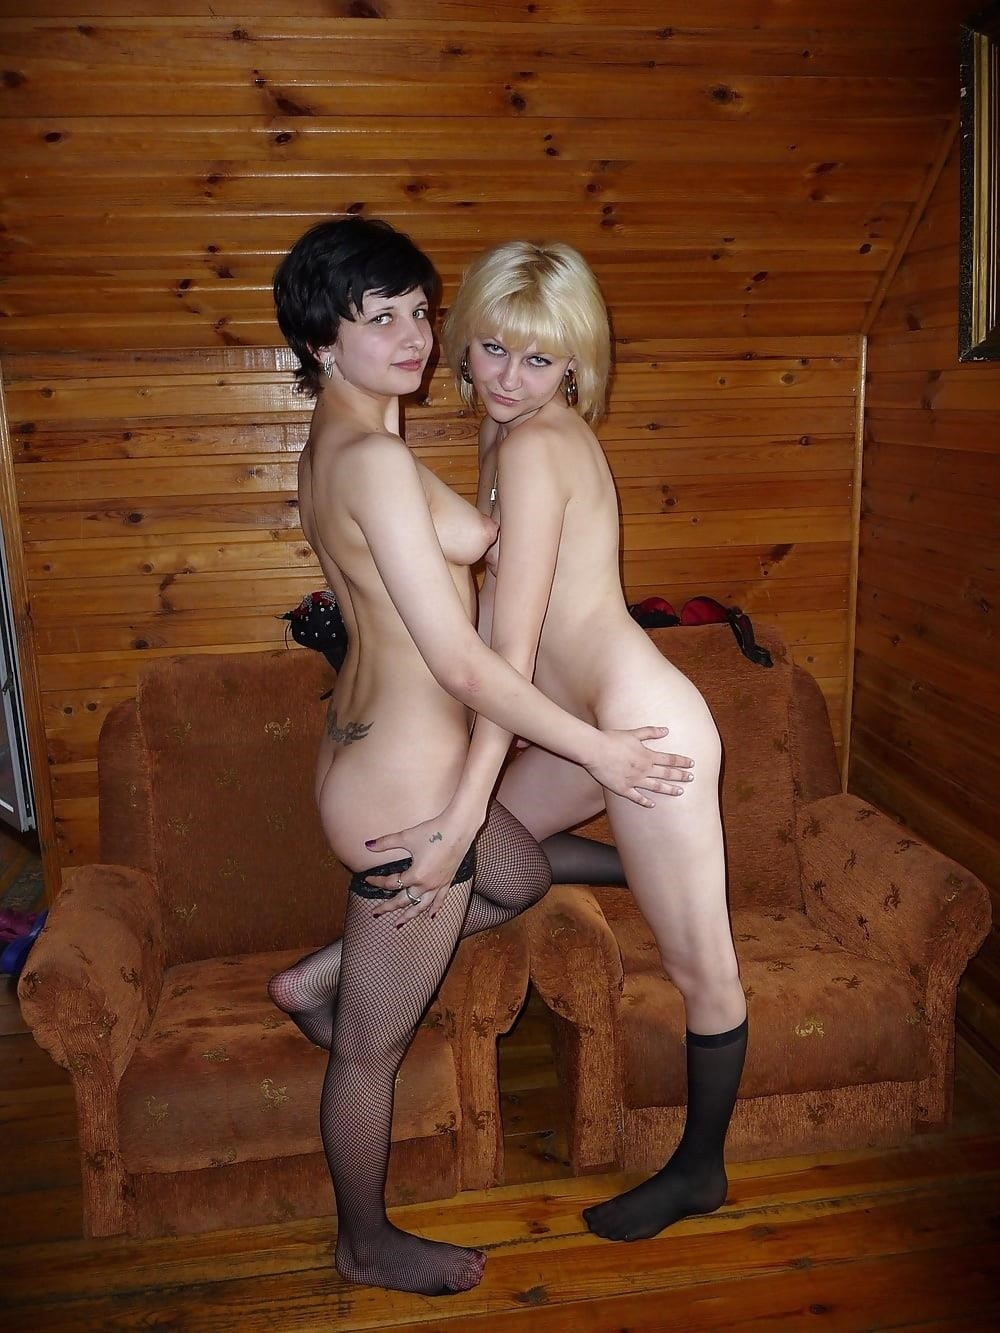 Sexy lesbians naked kissing-8225